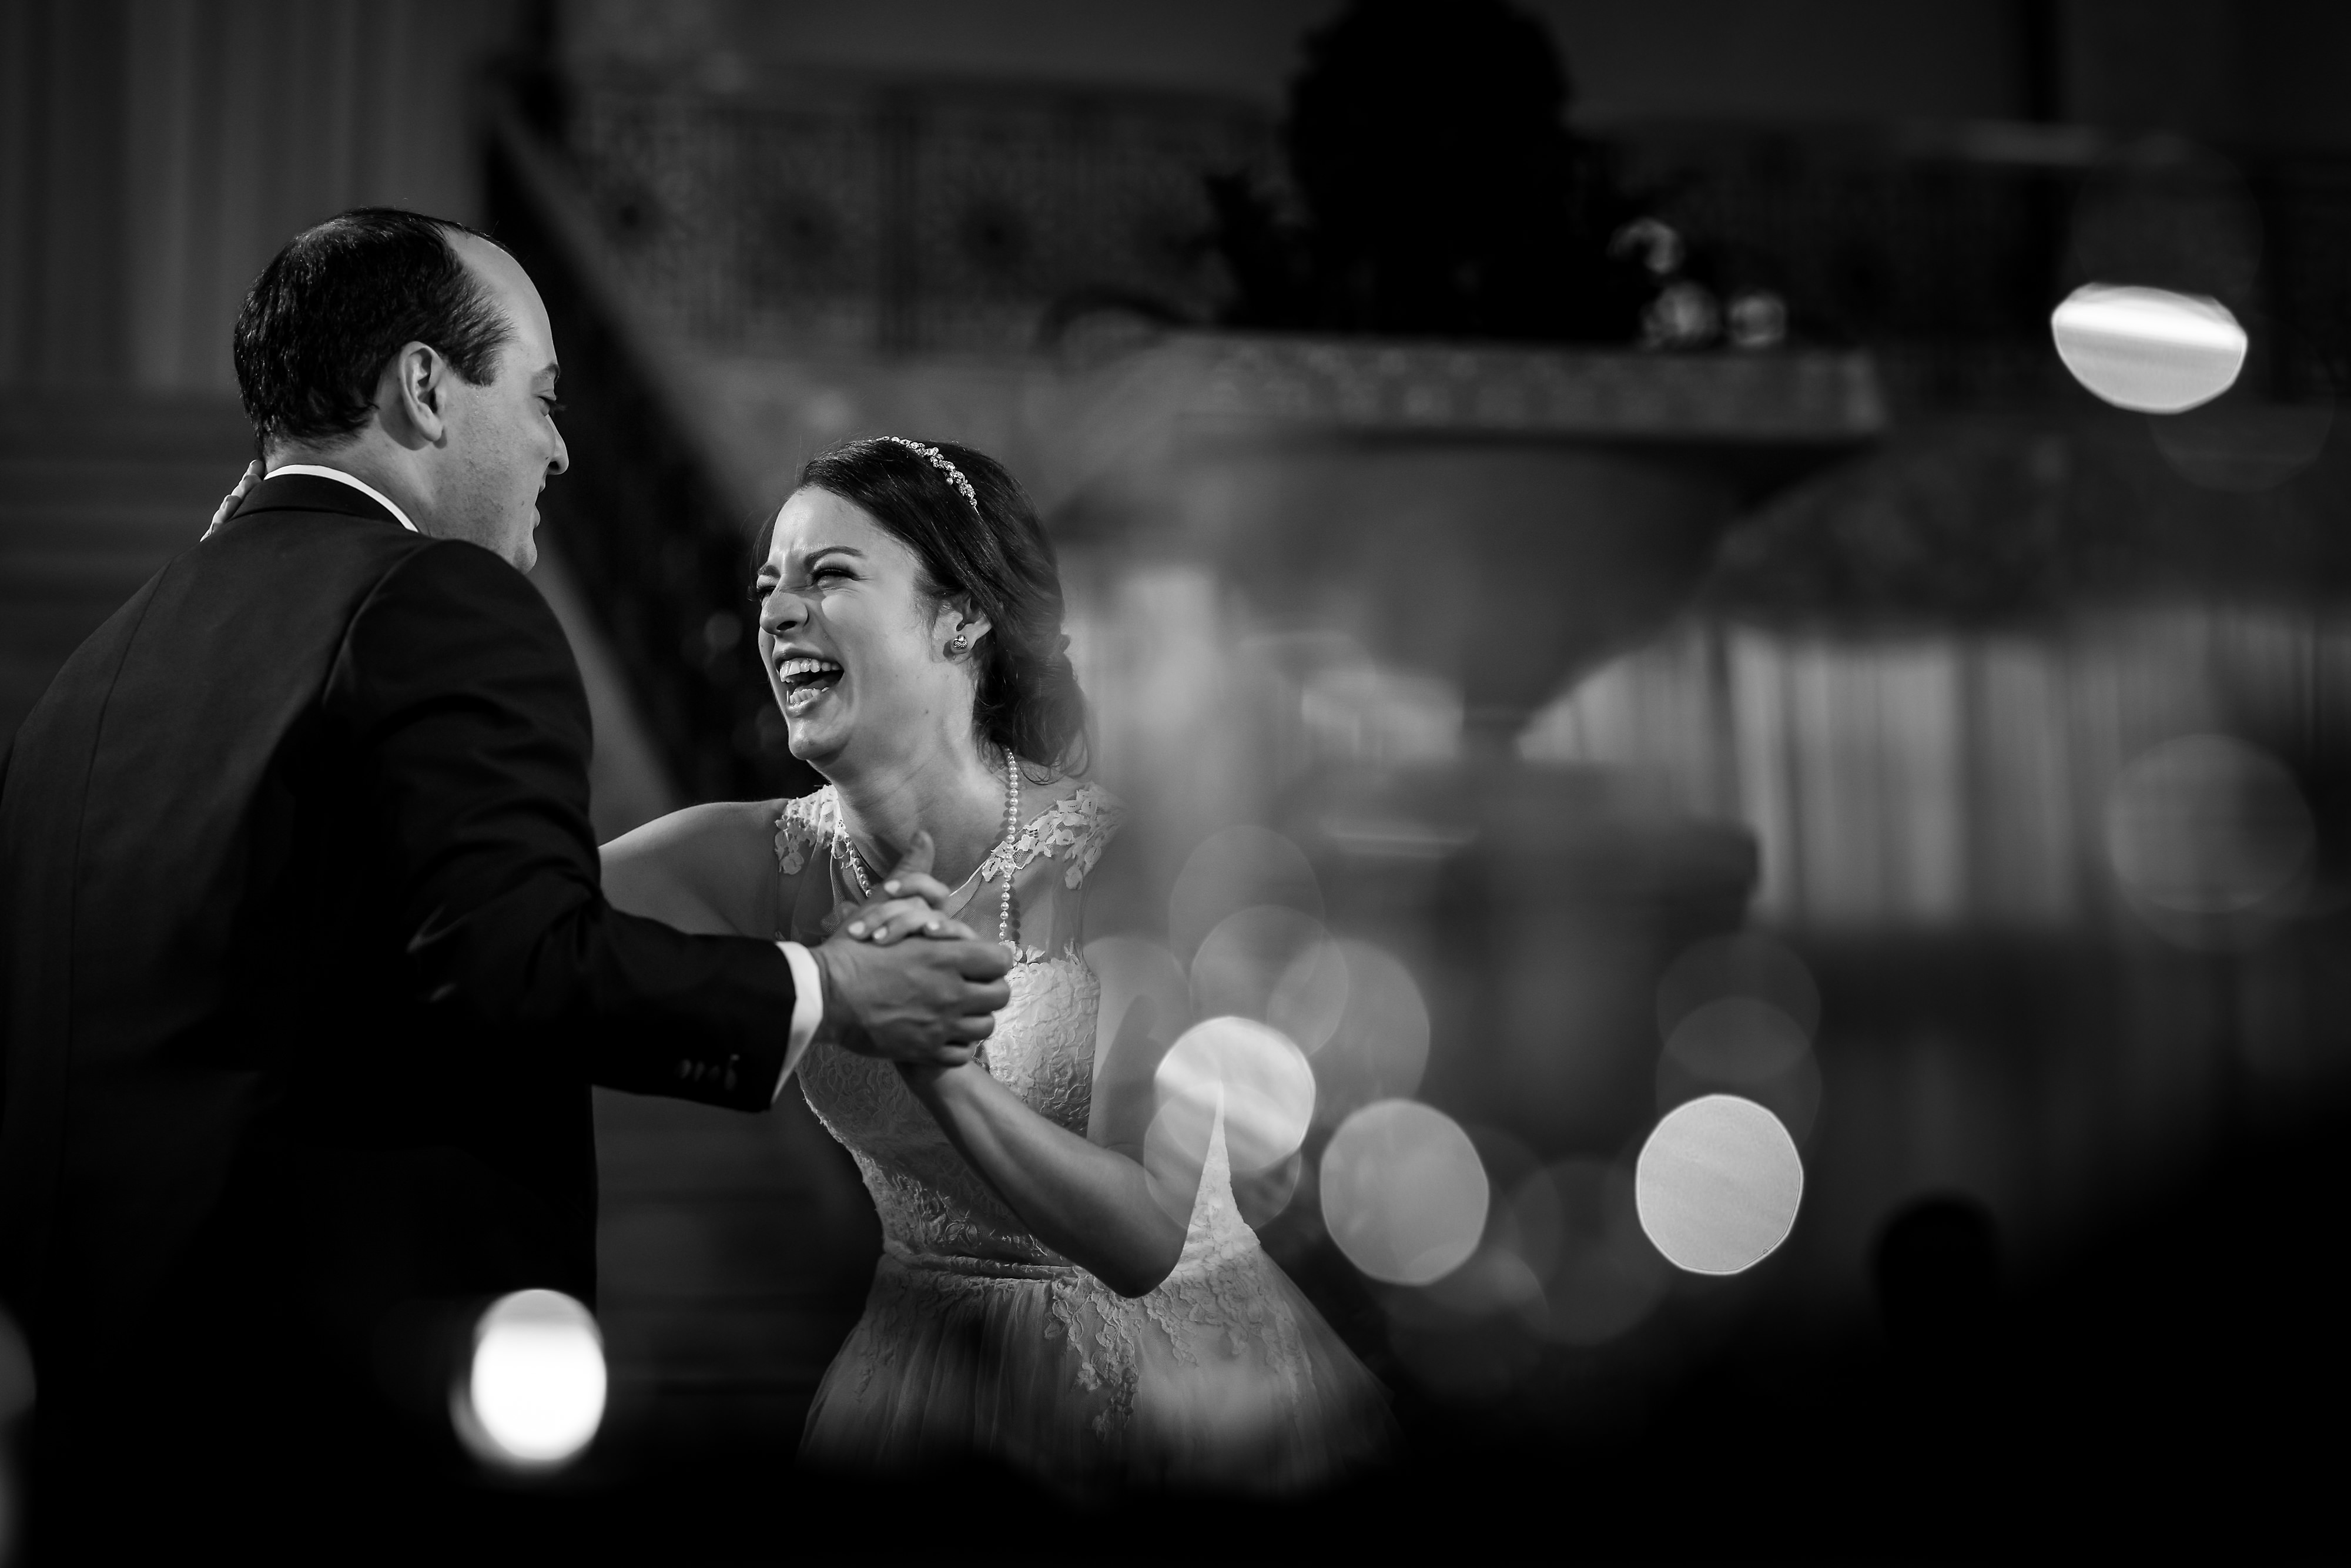 Bride and groom first dance with candles during wedding reception at the Rookery Building in Chicago